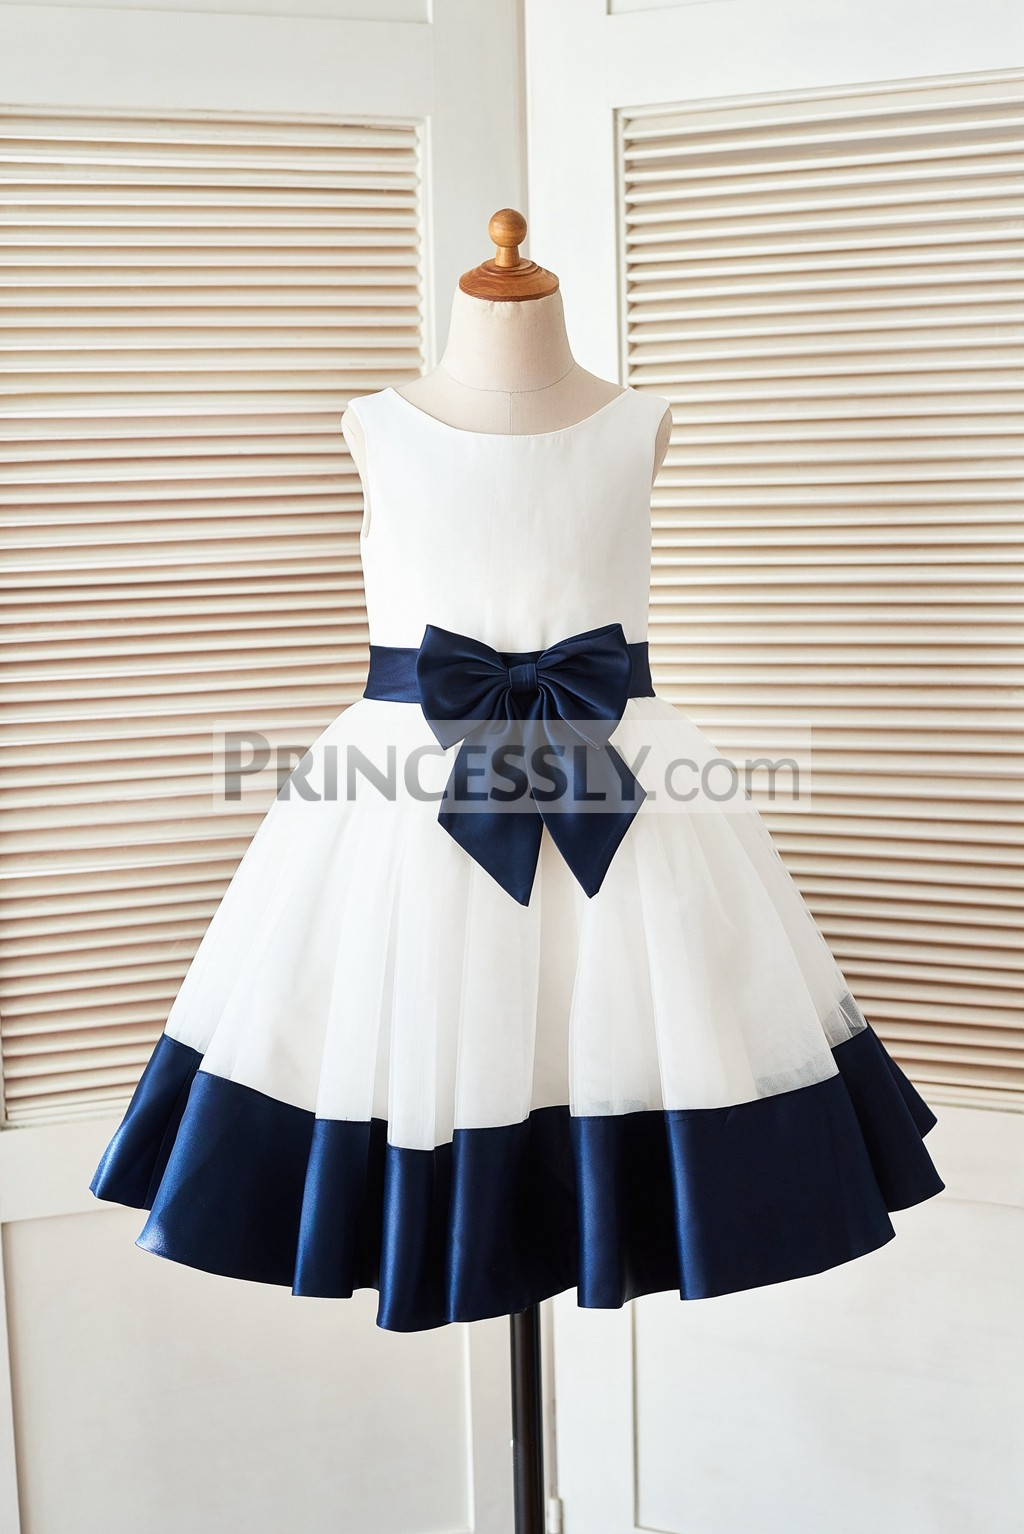 Ivory Satin Tulle Flower Girl Dress With Navy Blue Belt